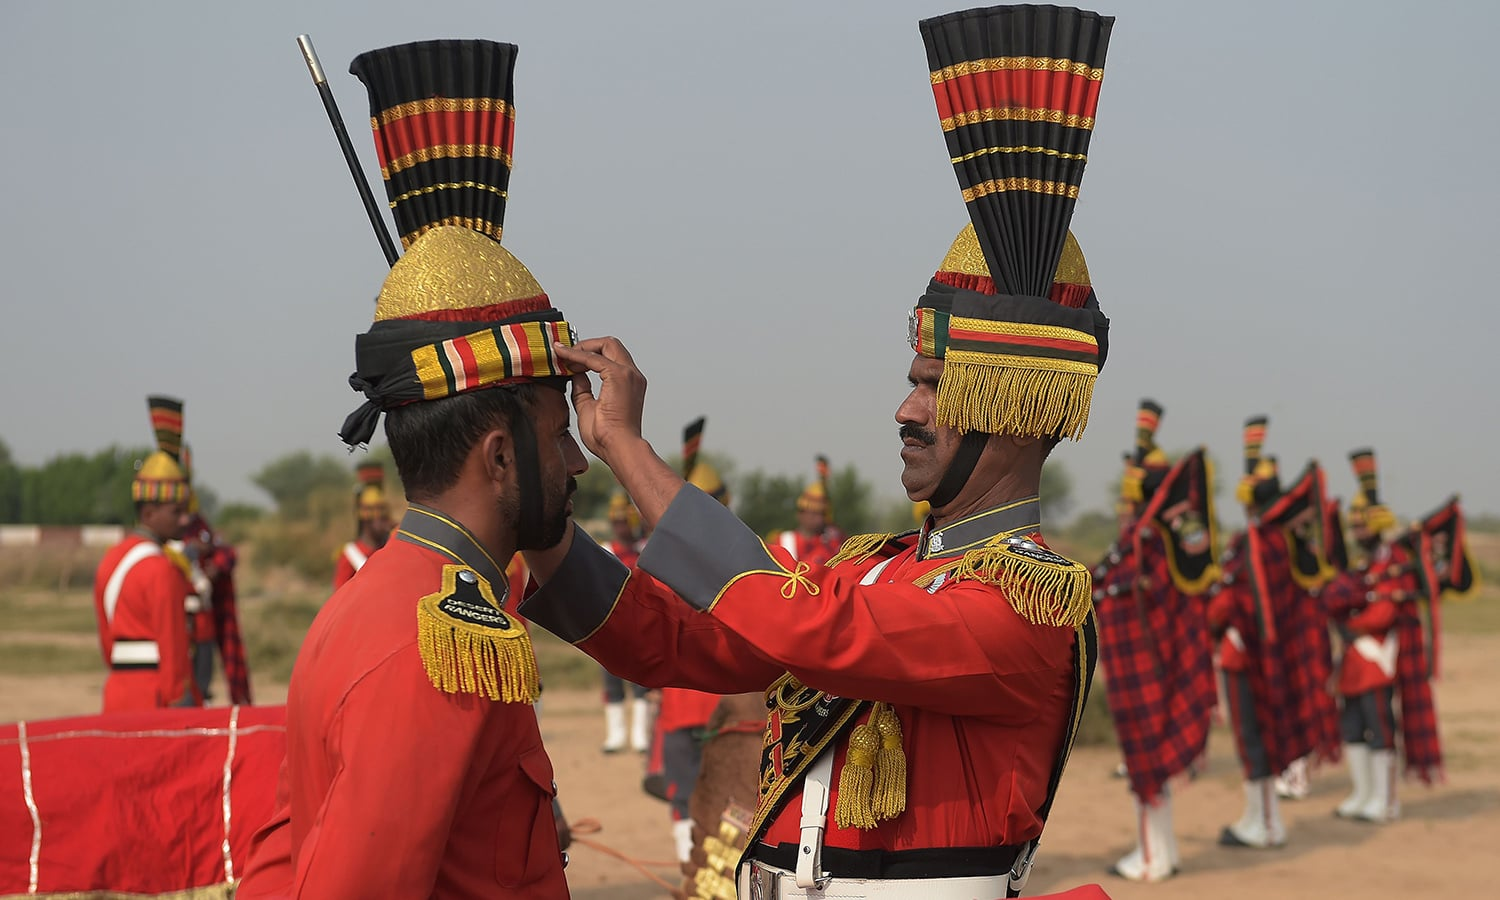 In this photograph taken on November 13, 2015, Band Major of Pakistan Desert Rangers, Muhammad Iqbal (R) adjusts a traditional hat of a team member before they mount camels for a march in Moj Garh, some 100 kilometres east of Bahawalpur in Punjab province. —AFP